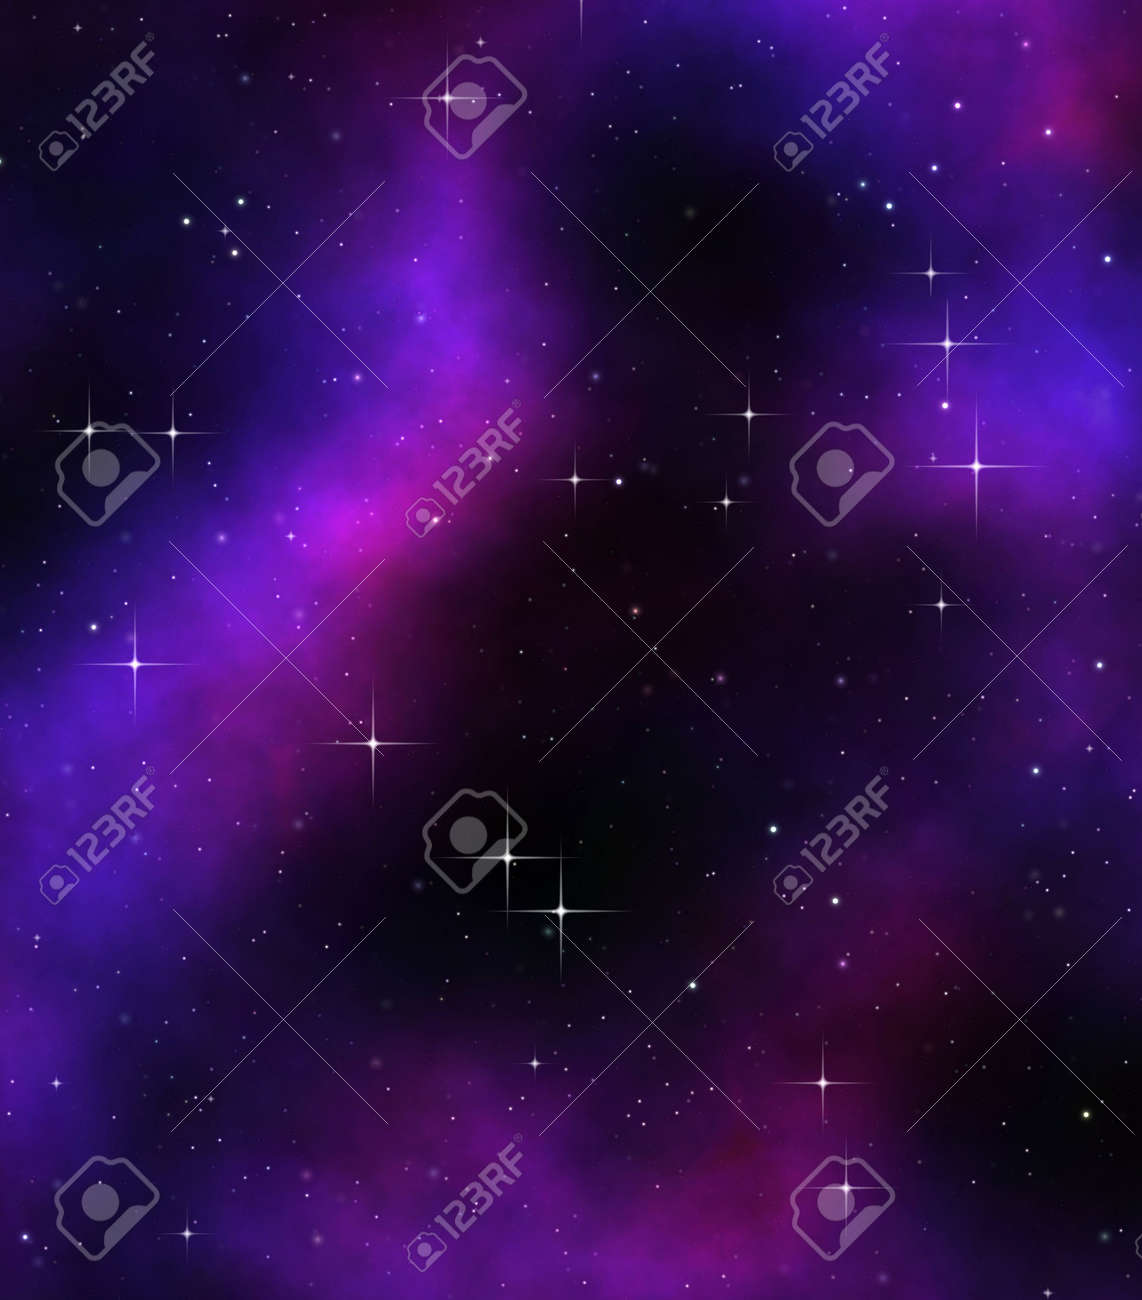 great image of stars in deep or outer space Stock Photo - 5471439